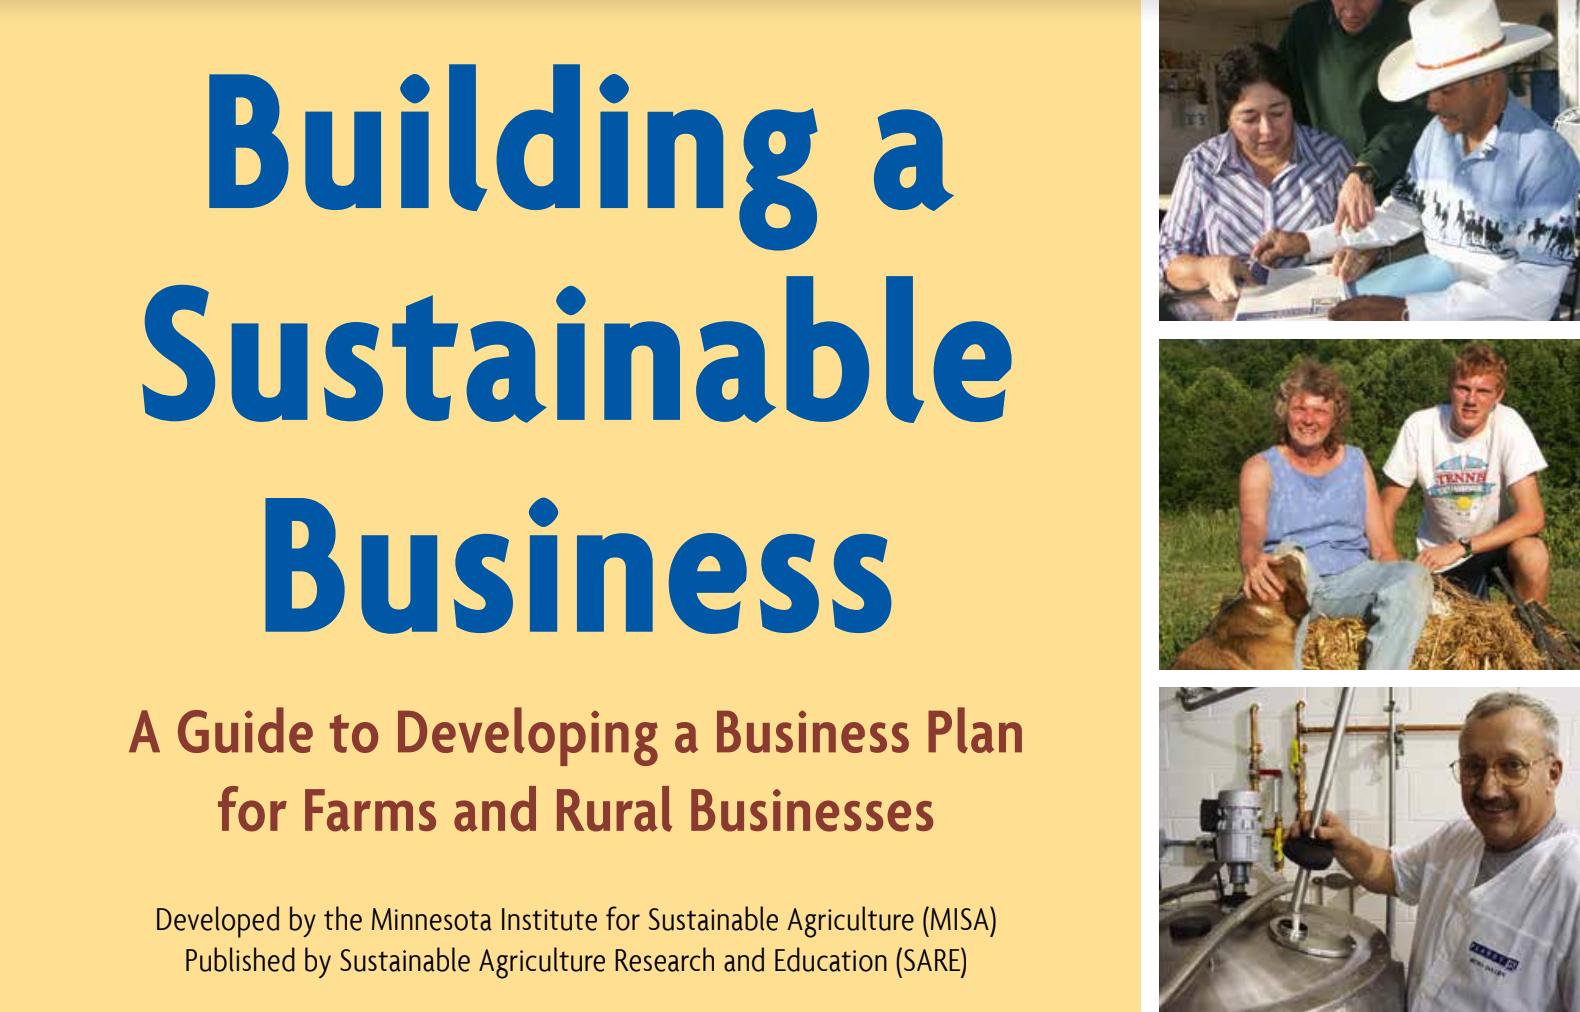 This guide from the Minnesota Institute for Sustainable Agriculture provides more information, worksheets and ideas on Building a Sustainable Business. It is designed for farms and rural businesses.  Click to view this PDF.